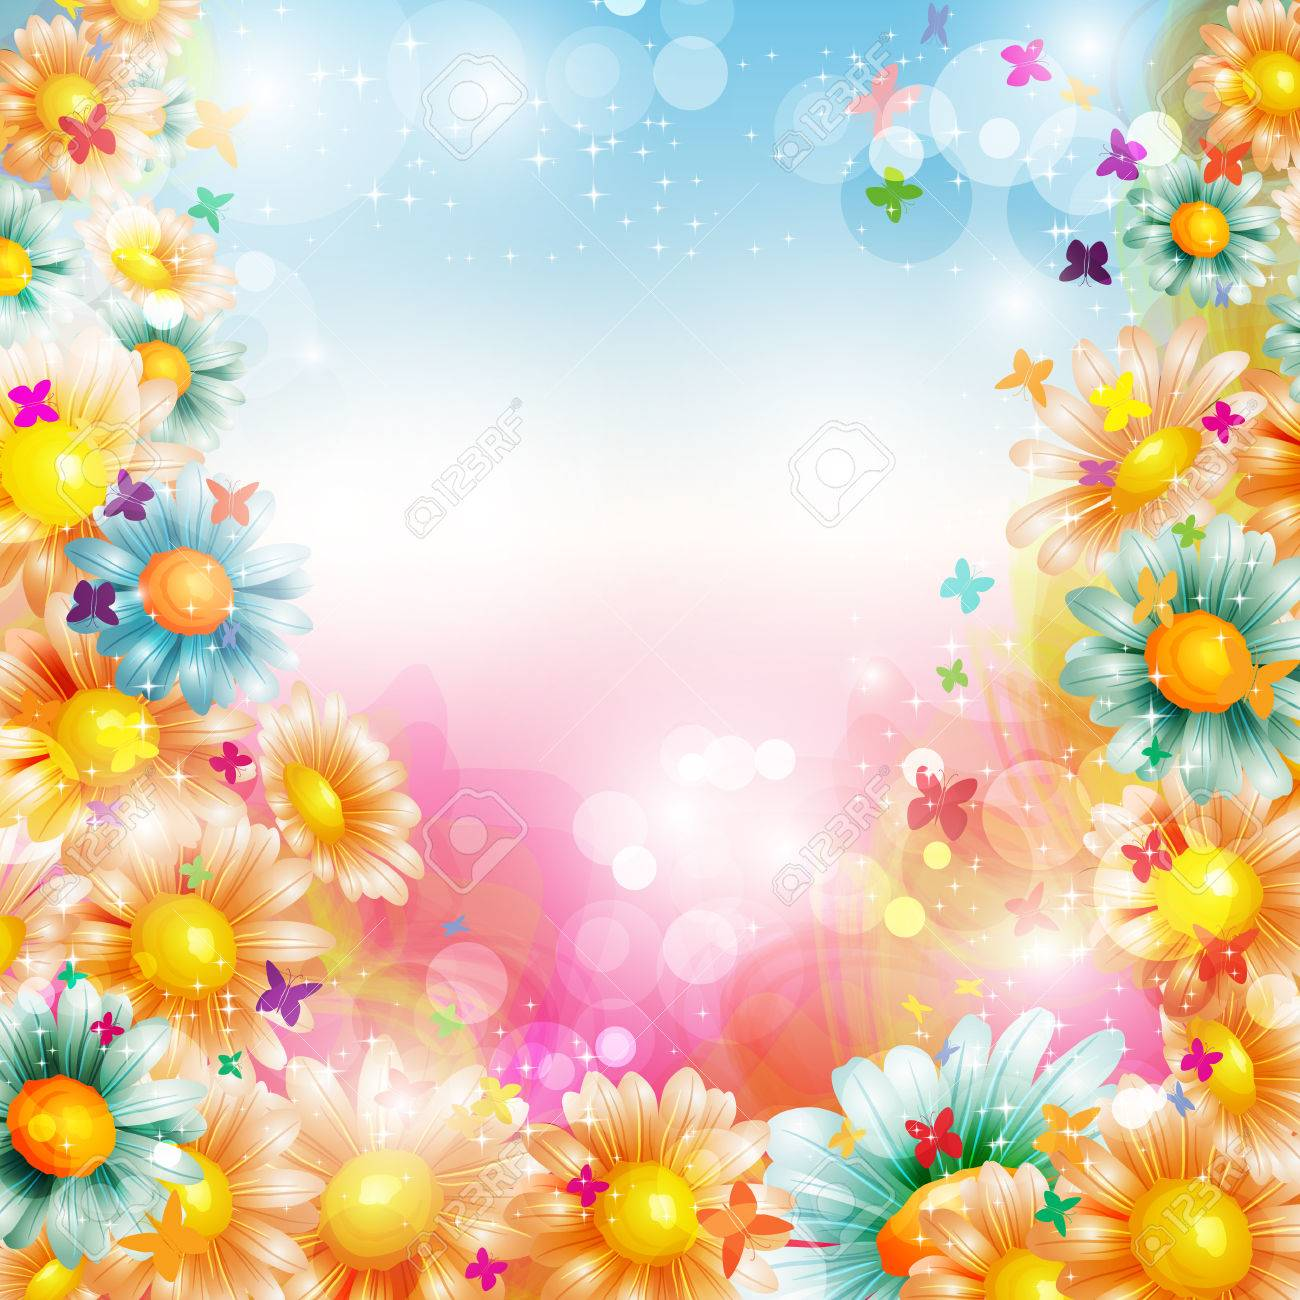 Abstract Colorful Bright Summer Or Spring Floral Background With